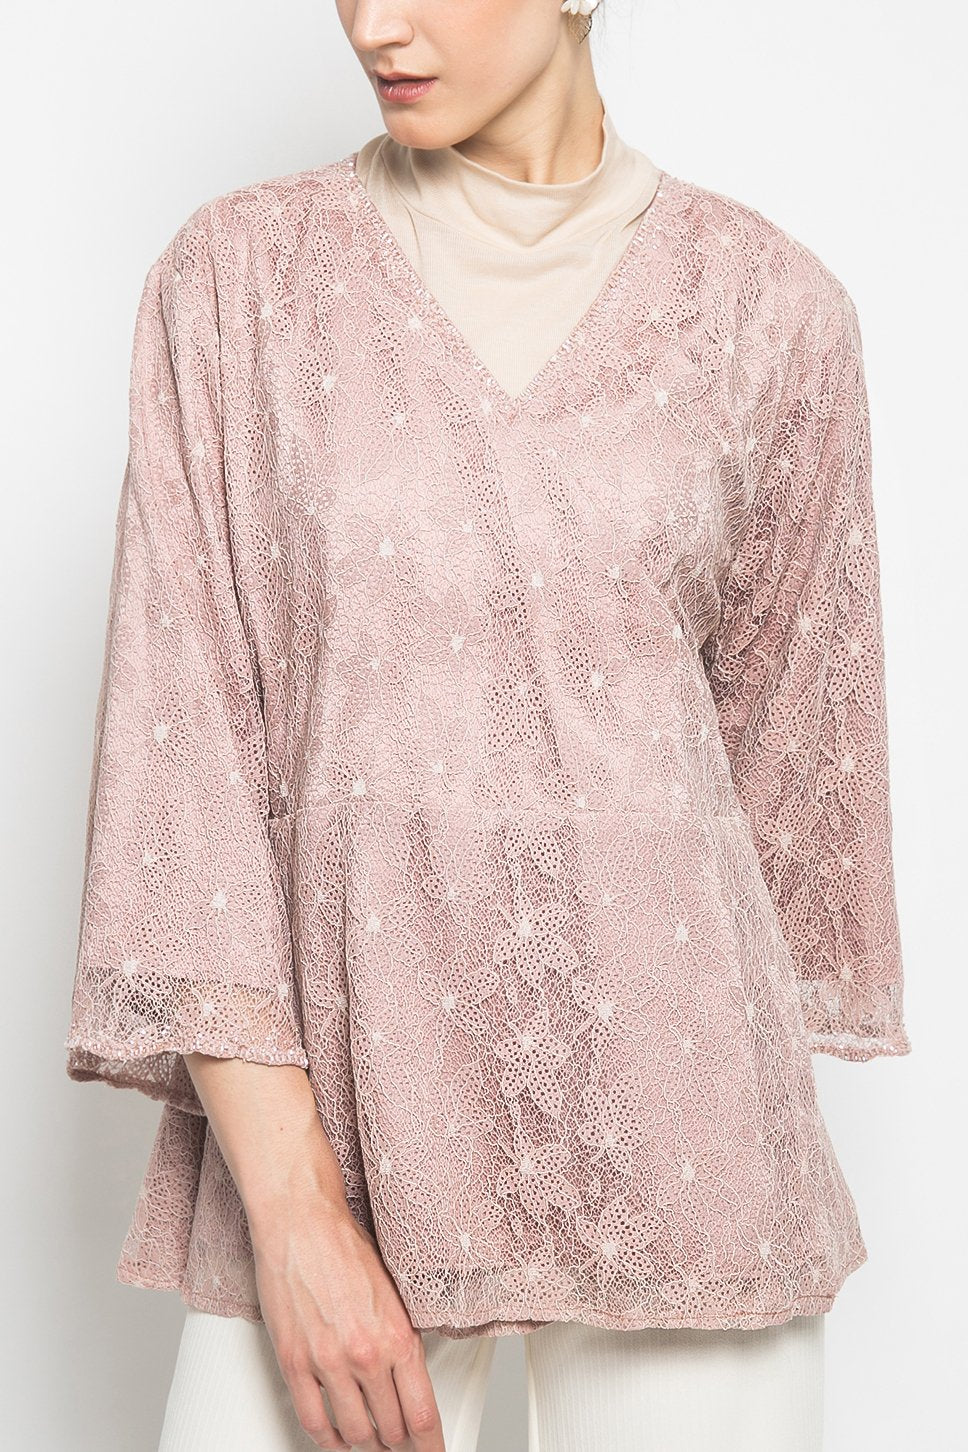 Camila Top in Dusty Pink